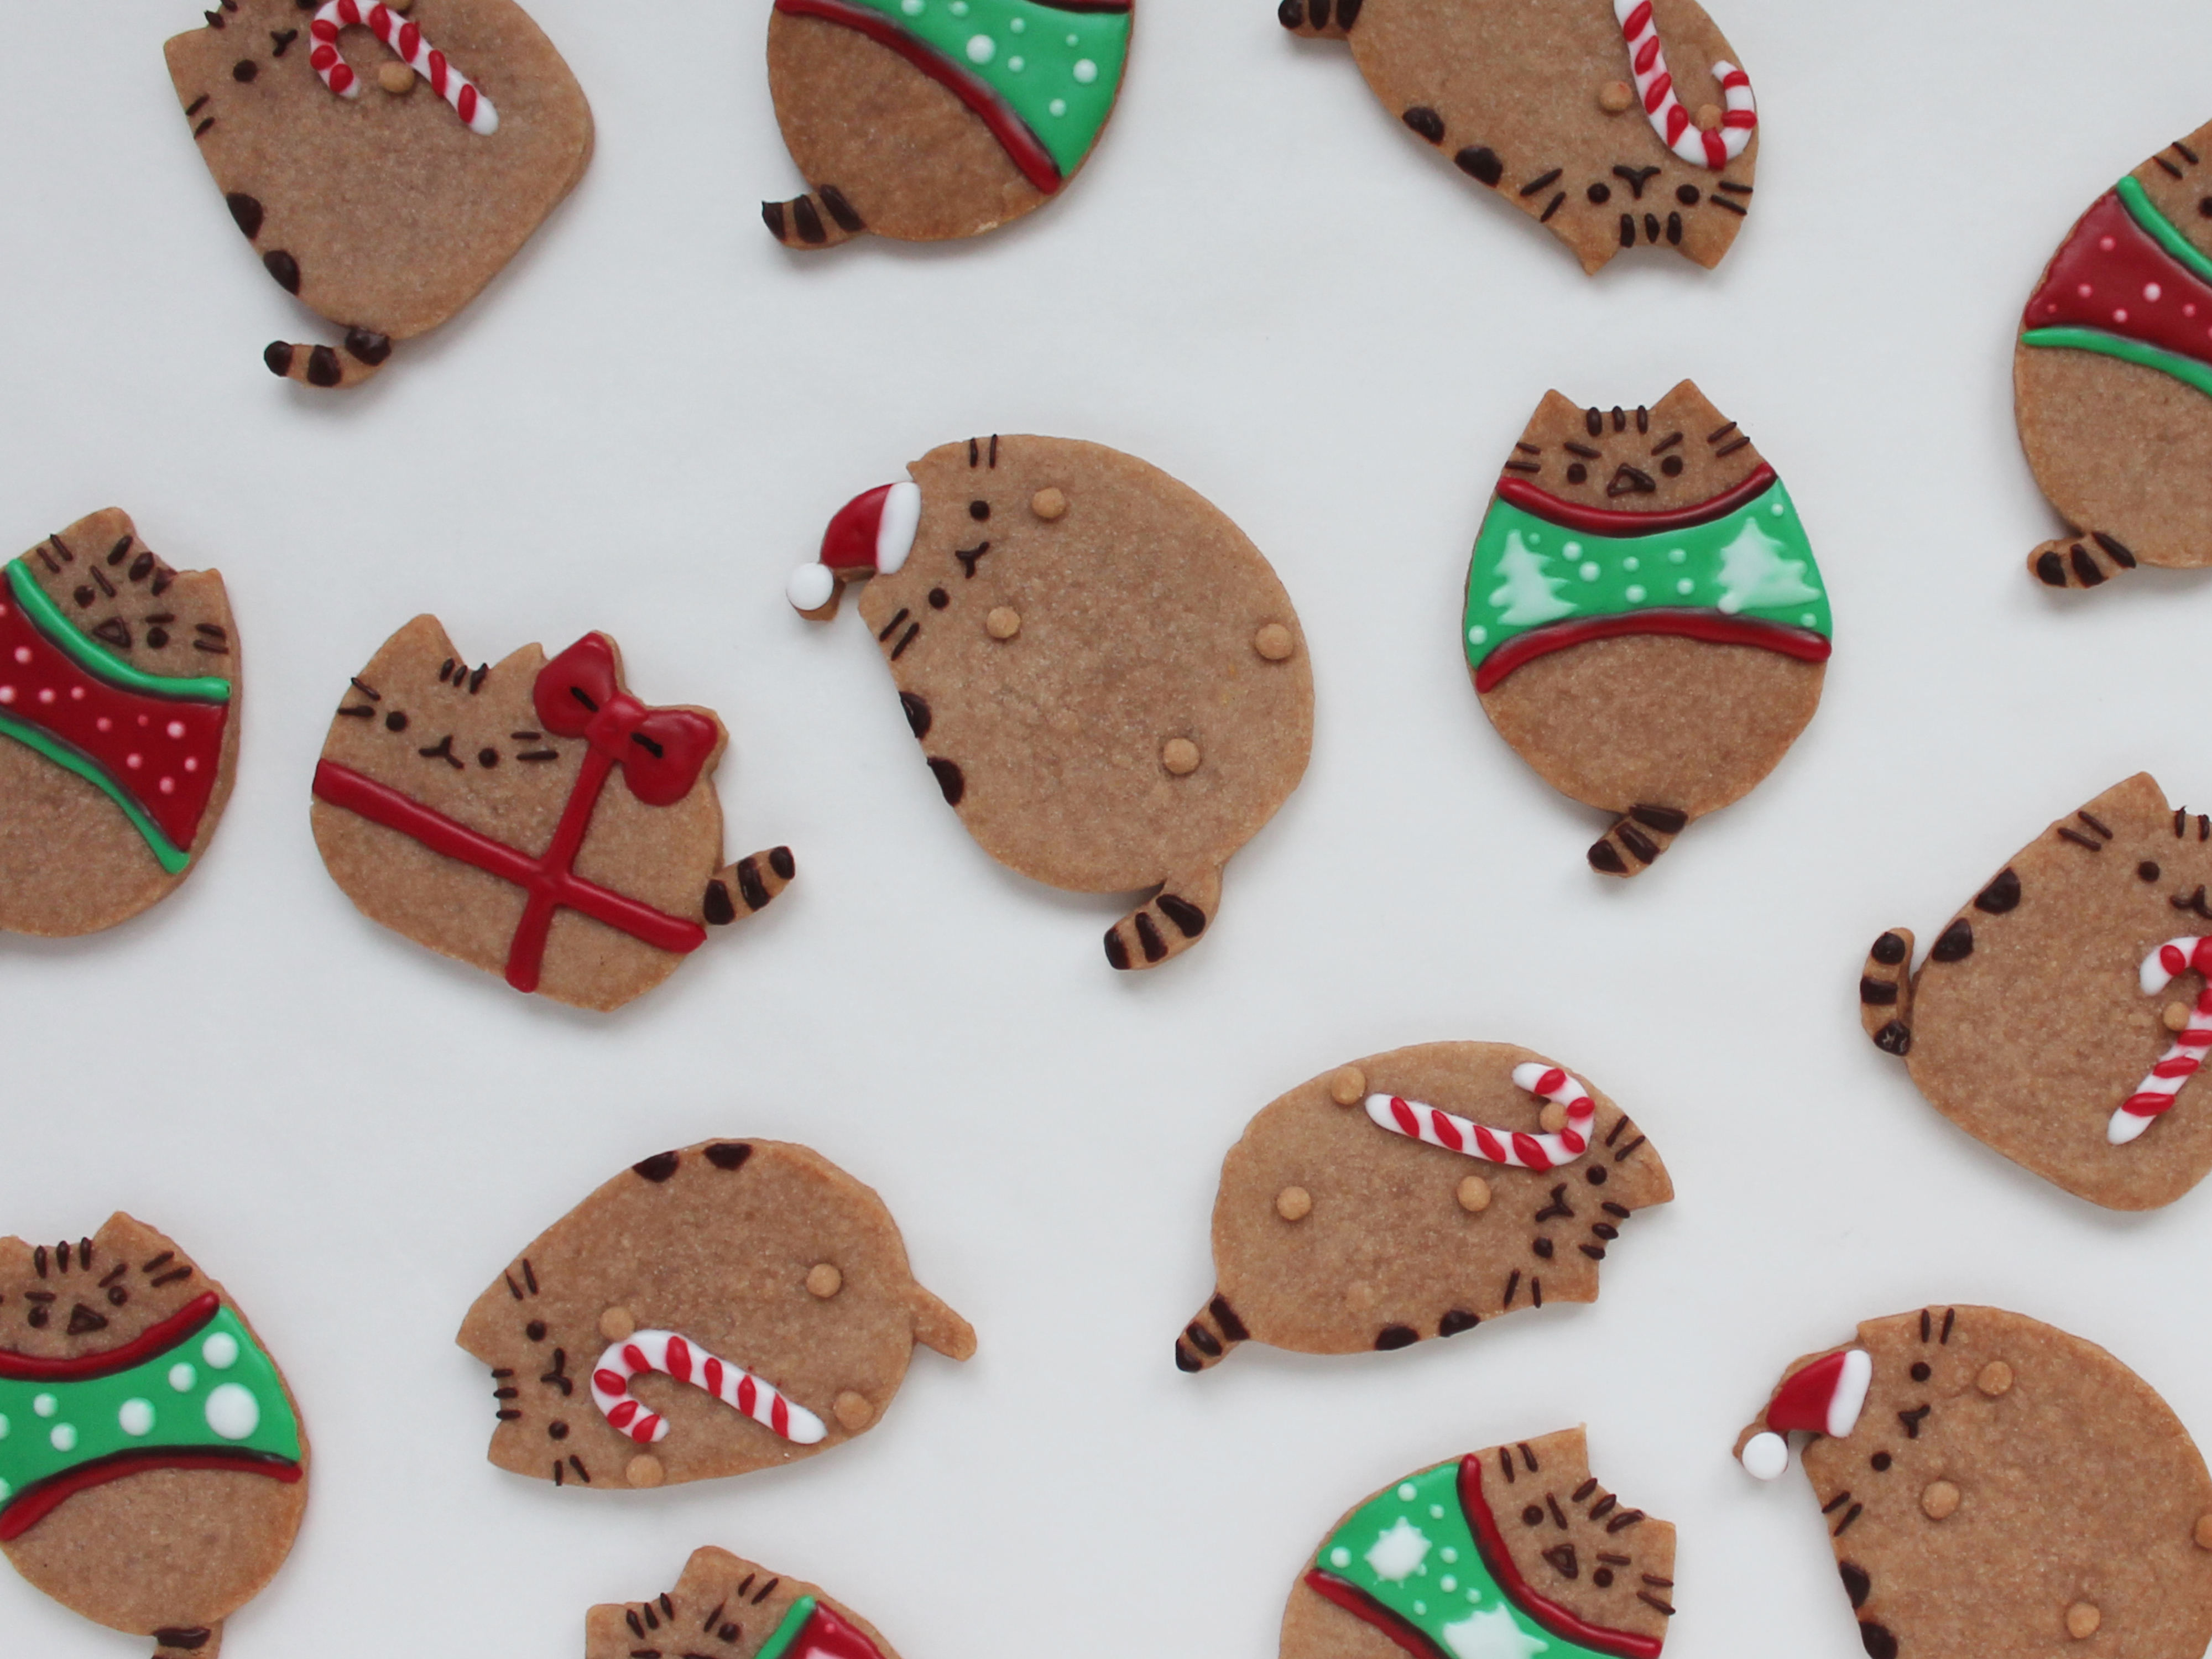 Best Holiday Cookie Recipes And Ideas - Genius Kitchen